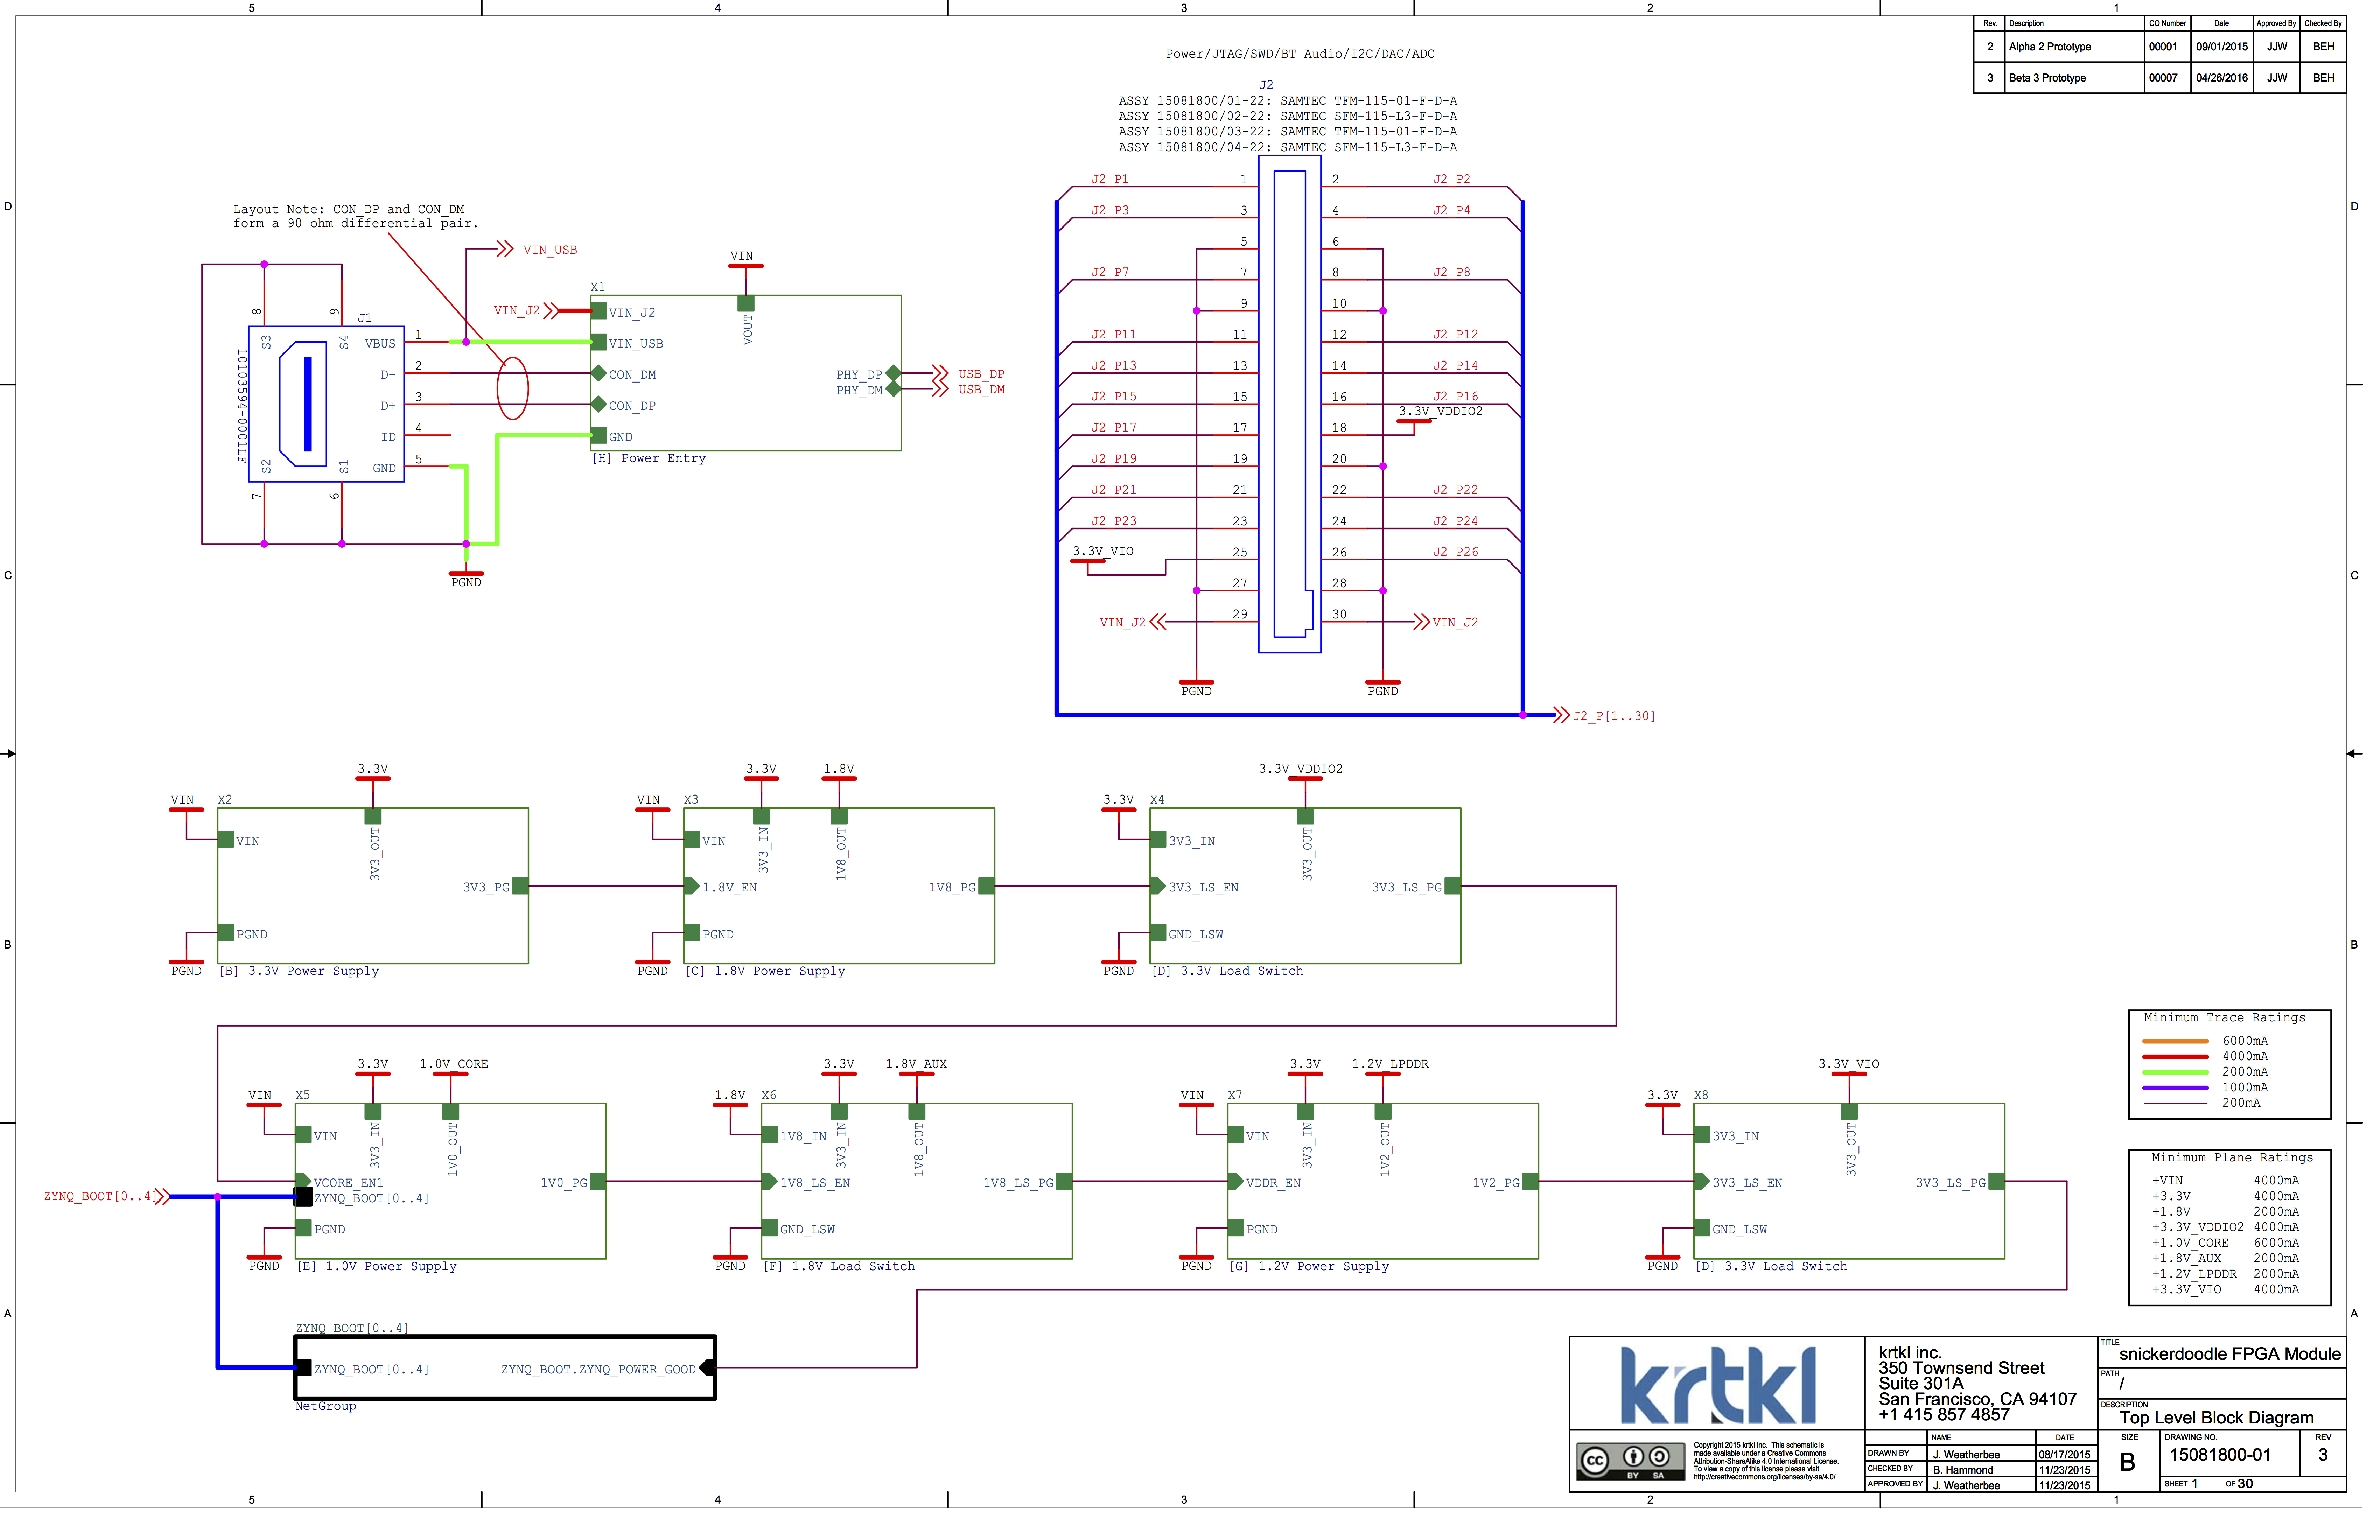 Doentation | krtkl on usb charger schematic, usb to serial cable pinout, usb circuit schematic, usb controller schematic, usb pin out schematic, usb splitter schematic, usb cable schematic, usb switch schematic, mini usb schematic, wireless mouse schematic, usb power schematic, usb schematic symbol, usb to ethernet cable pinout, micro usb schematic, usb wire, ps2 to usb schematic, usb diagram, usb 2.0 schematic, usb keyboard schematic, usb port schematic,